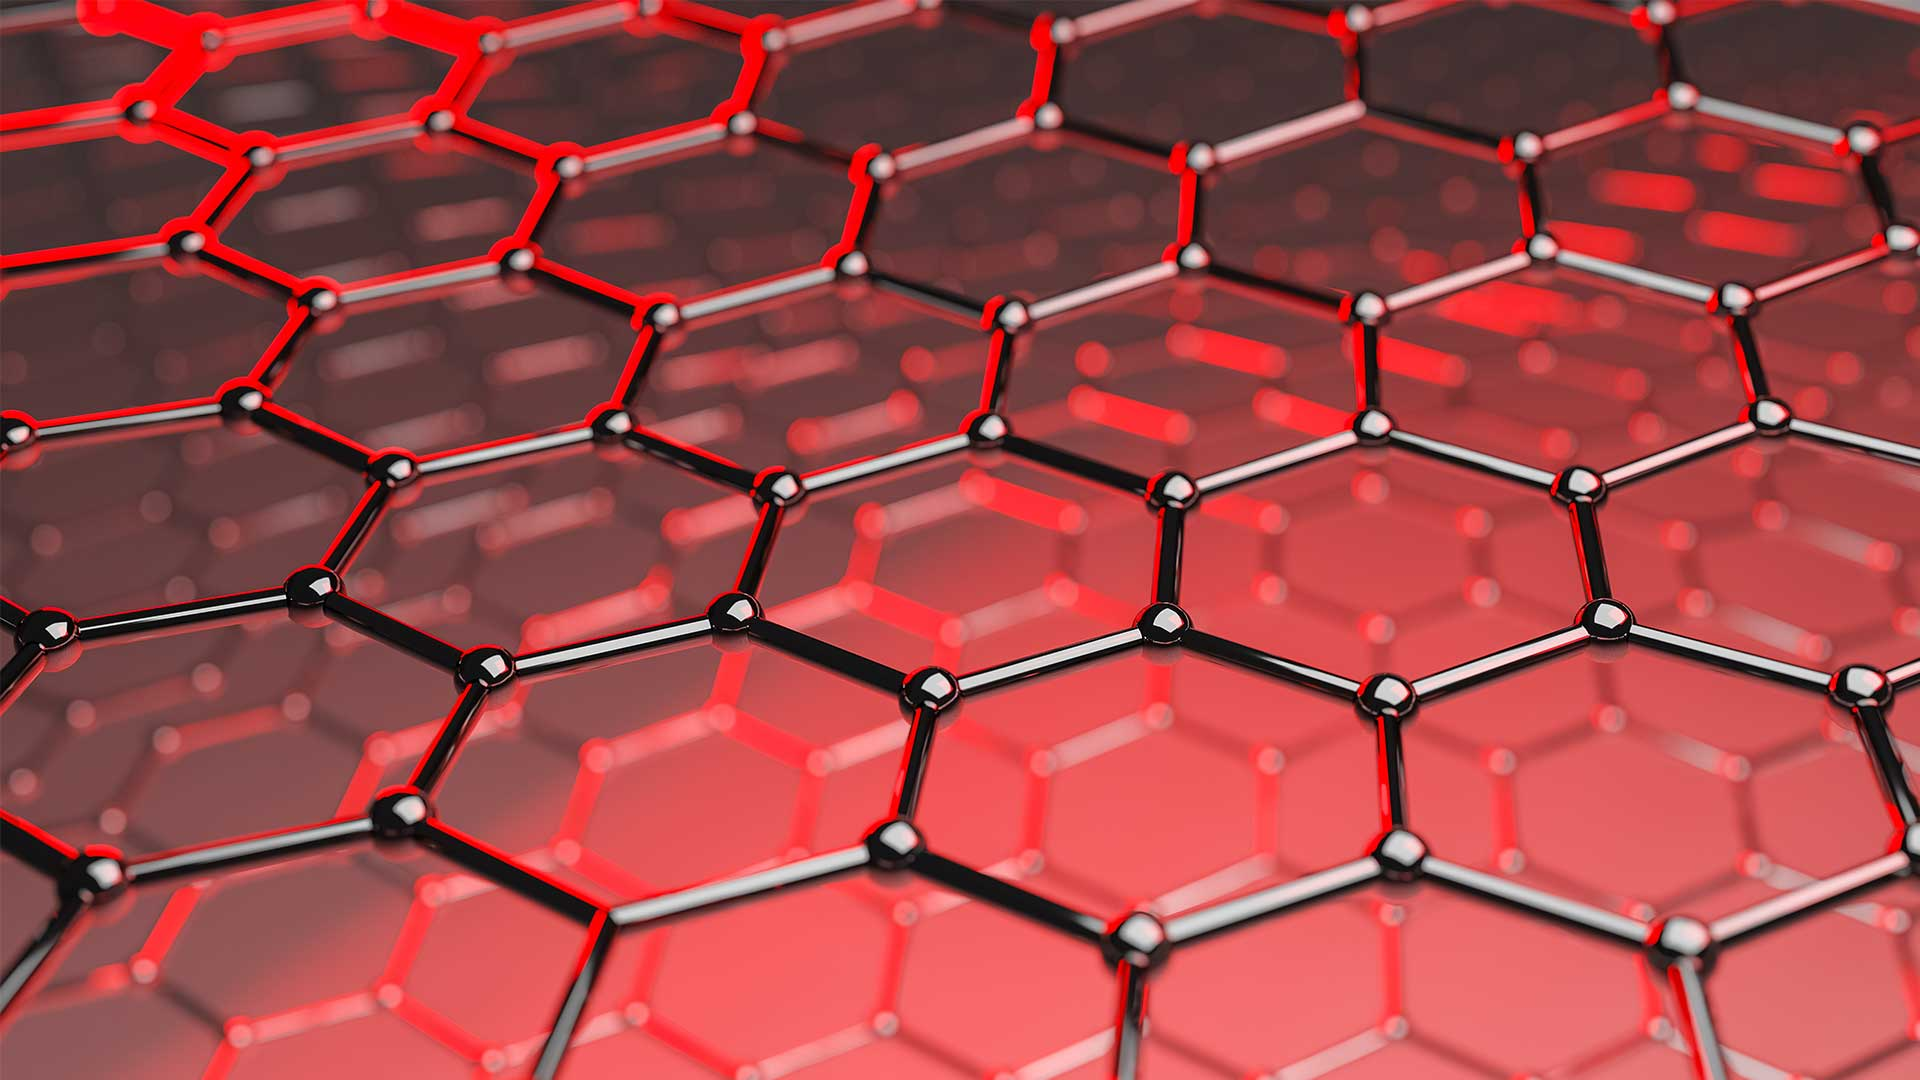 Graphene and Boron – a Mighty Combination